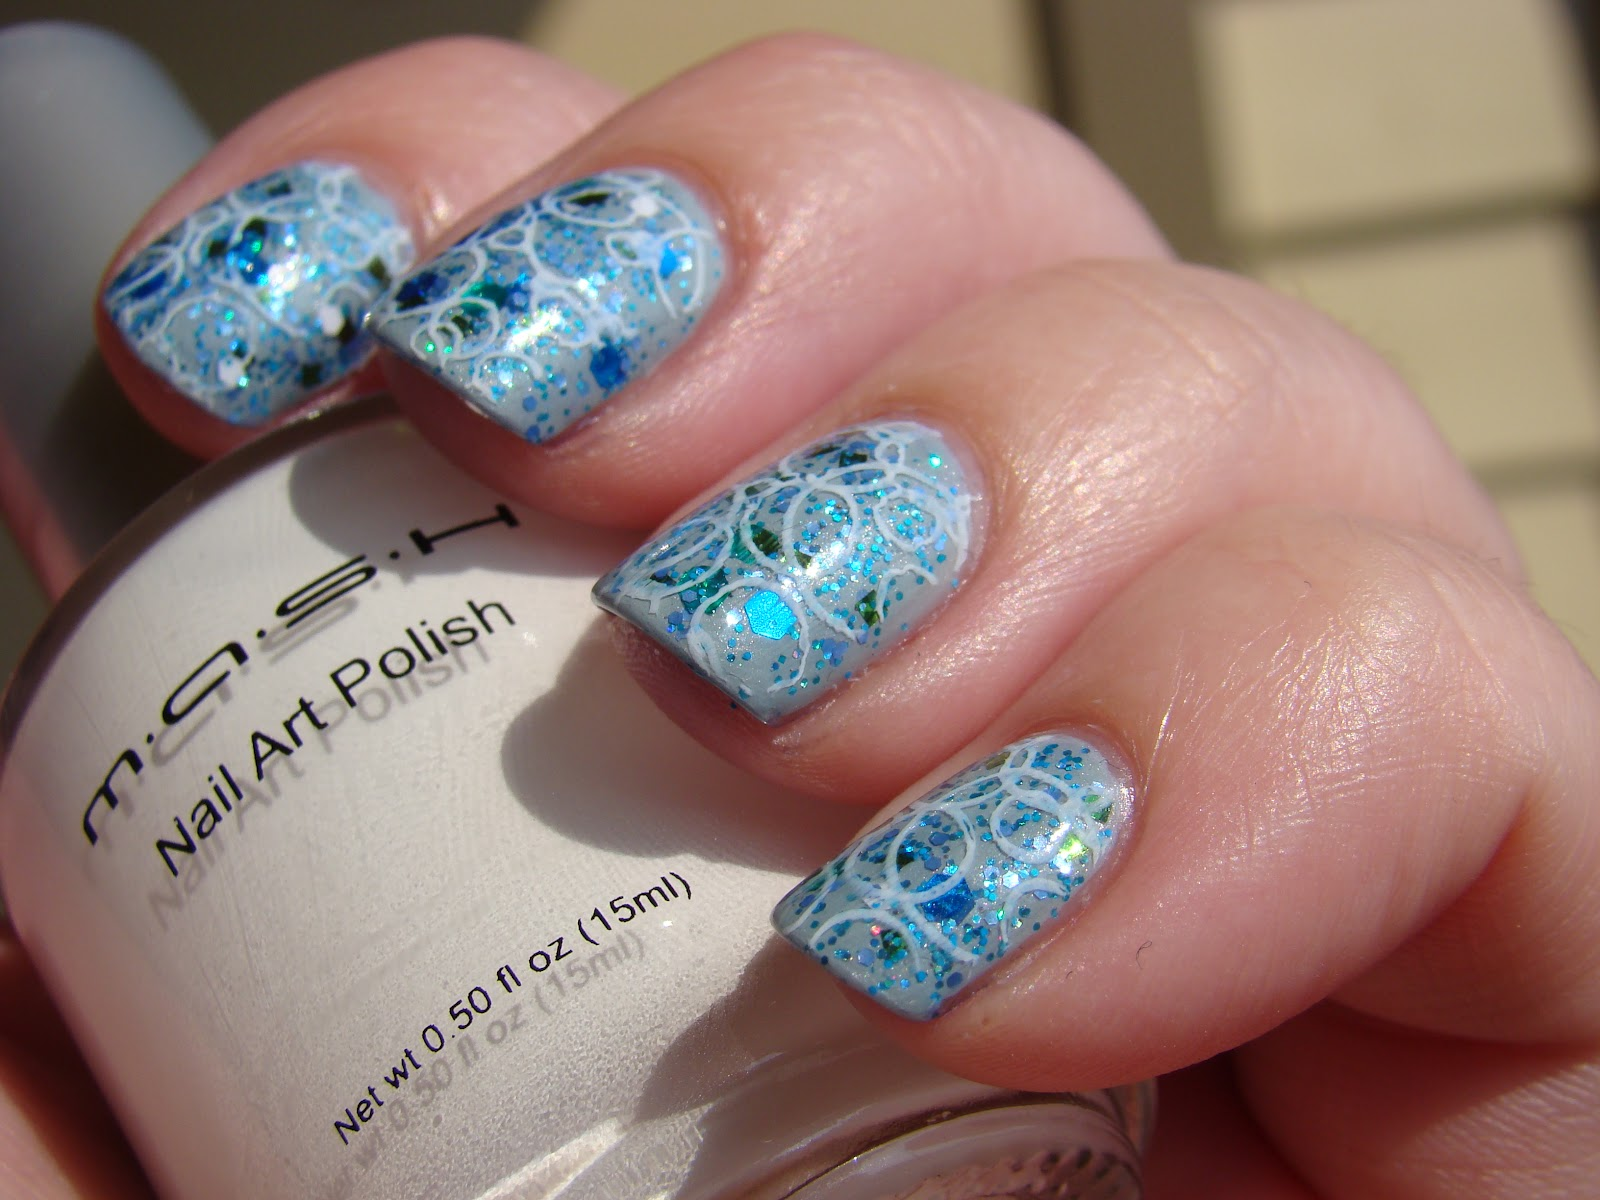 featuring Sonoma Nail Art 20,000 Leagues Under the Sea, MASH Stamping